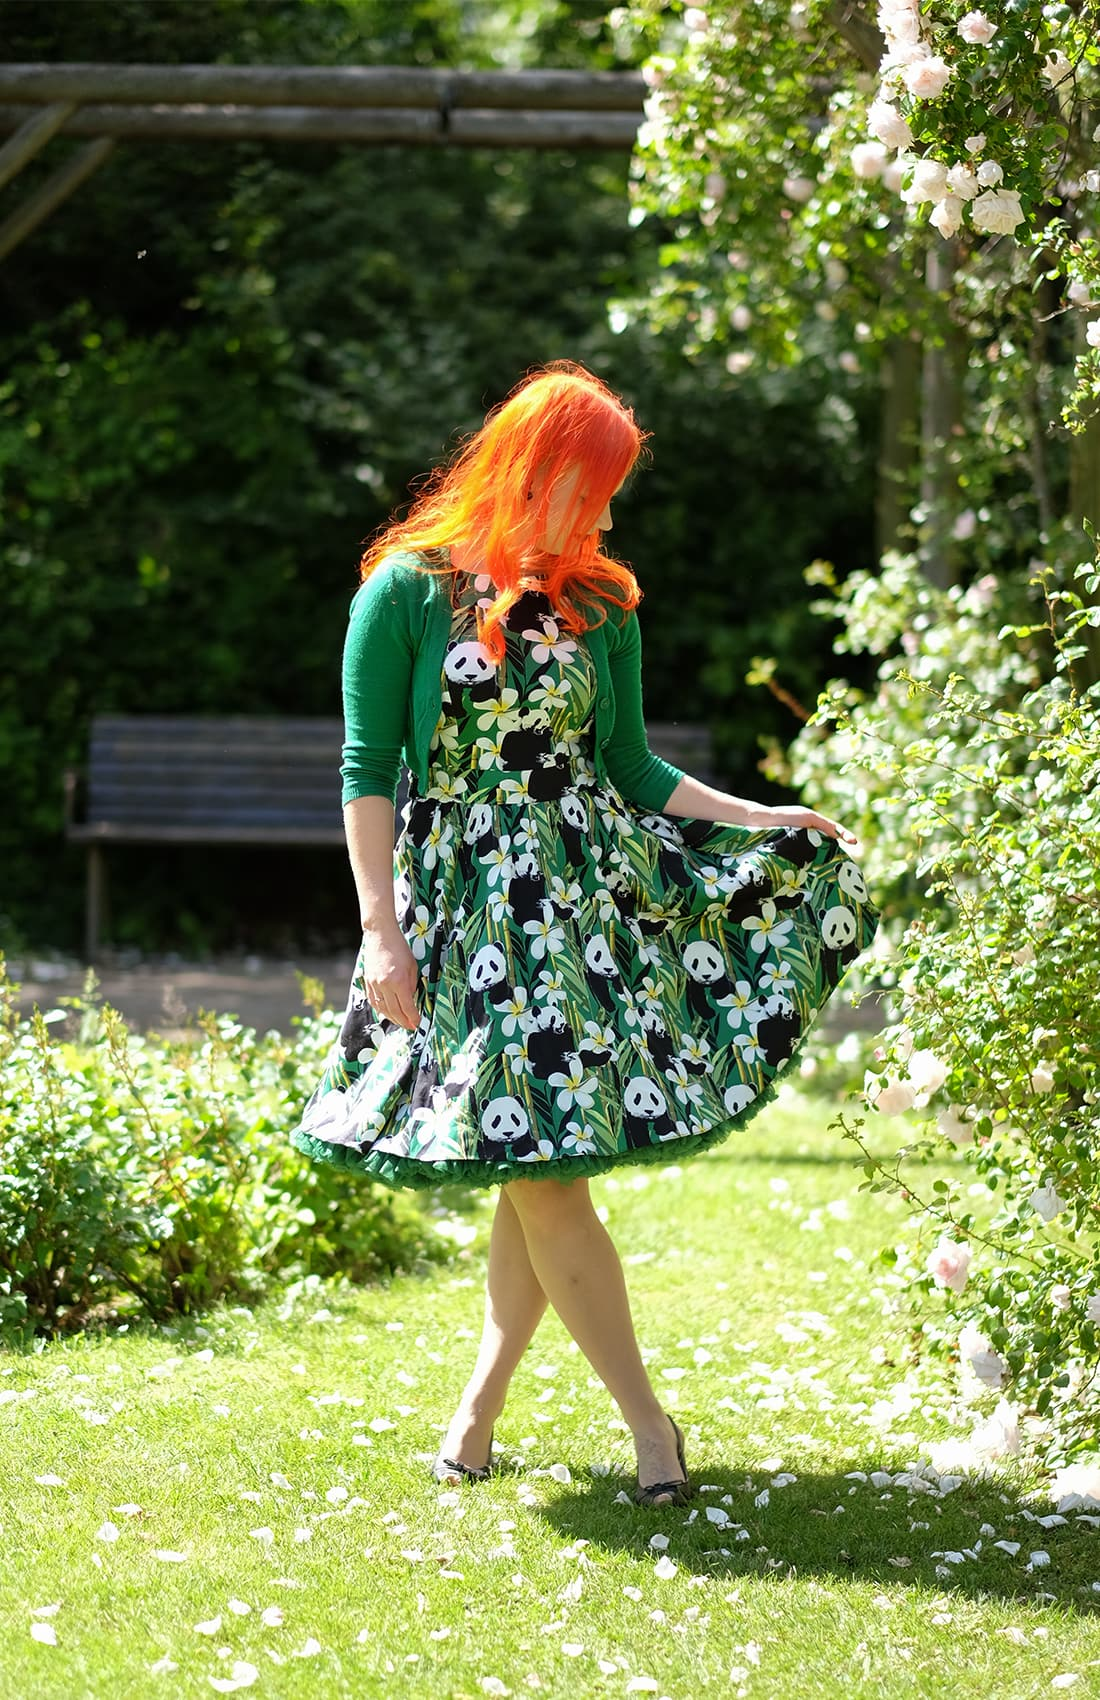 AlexiaDahl.com - A Panda Tea dress from Lady V London and a Malco Modes petticoat